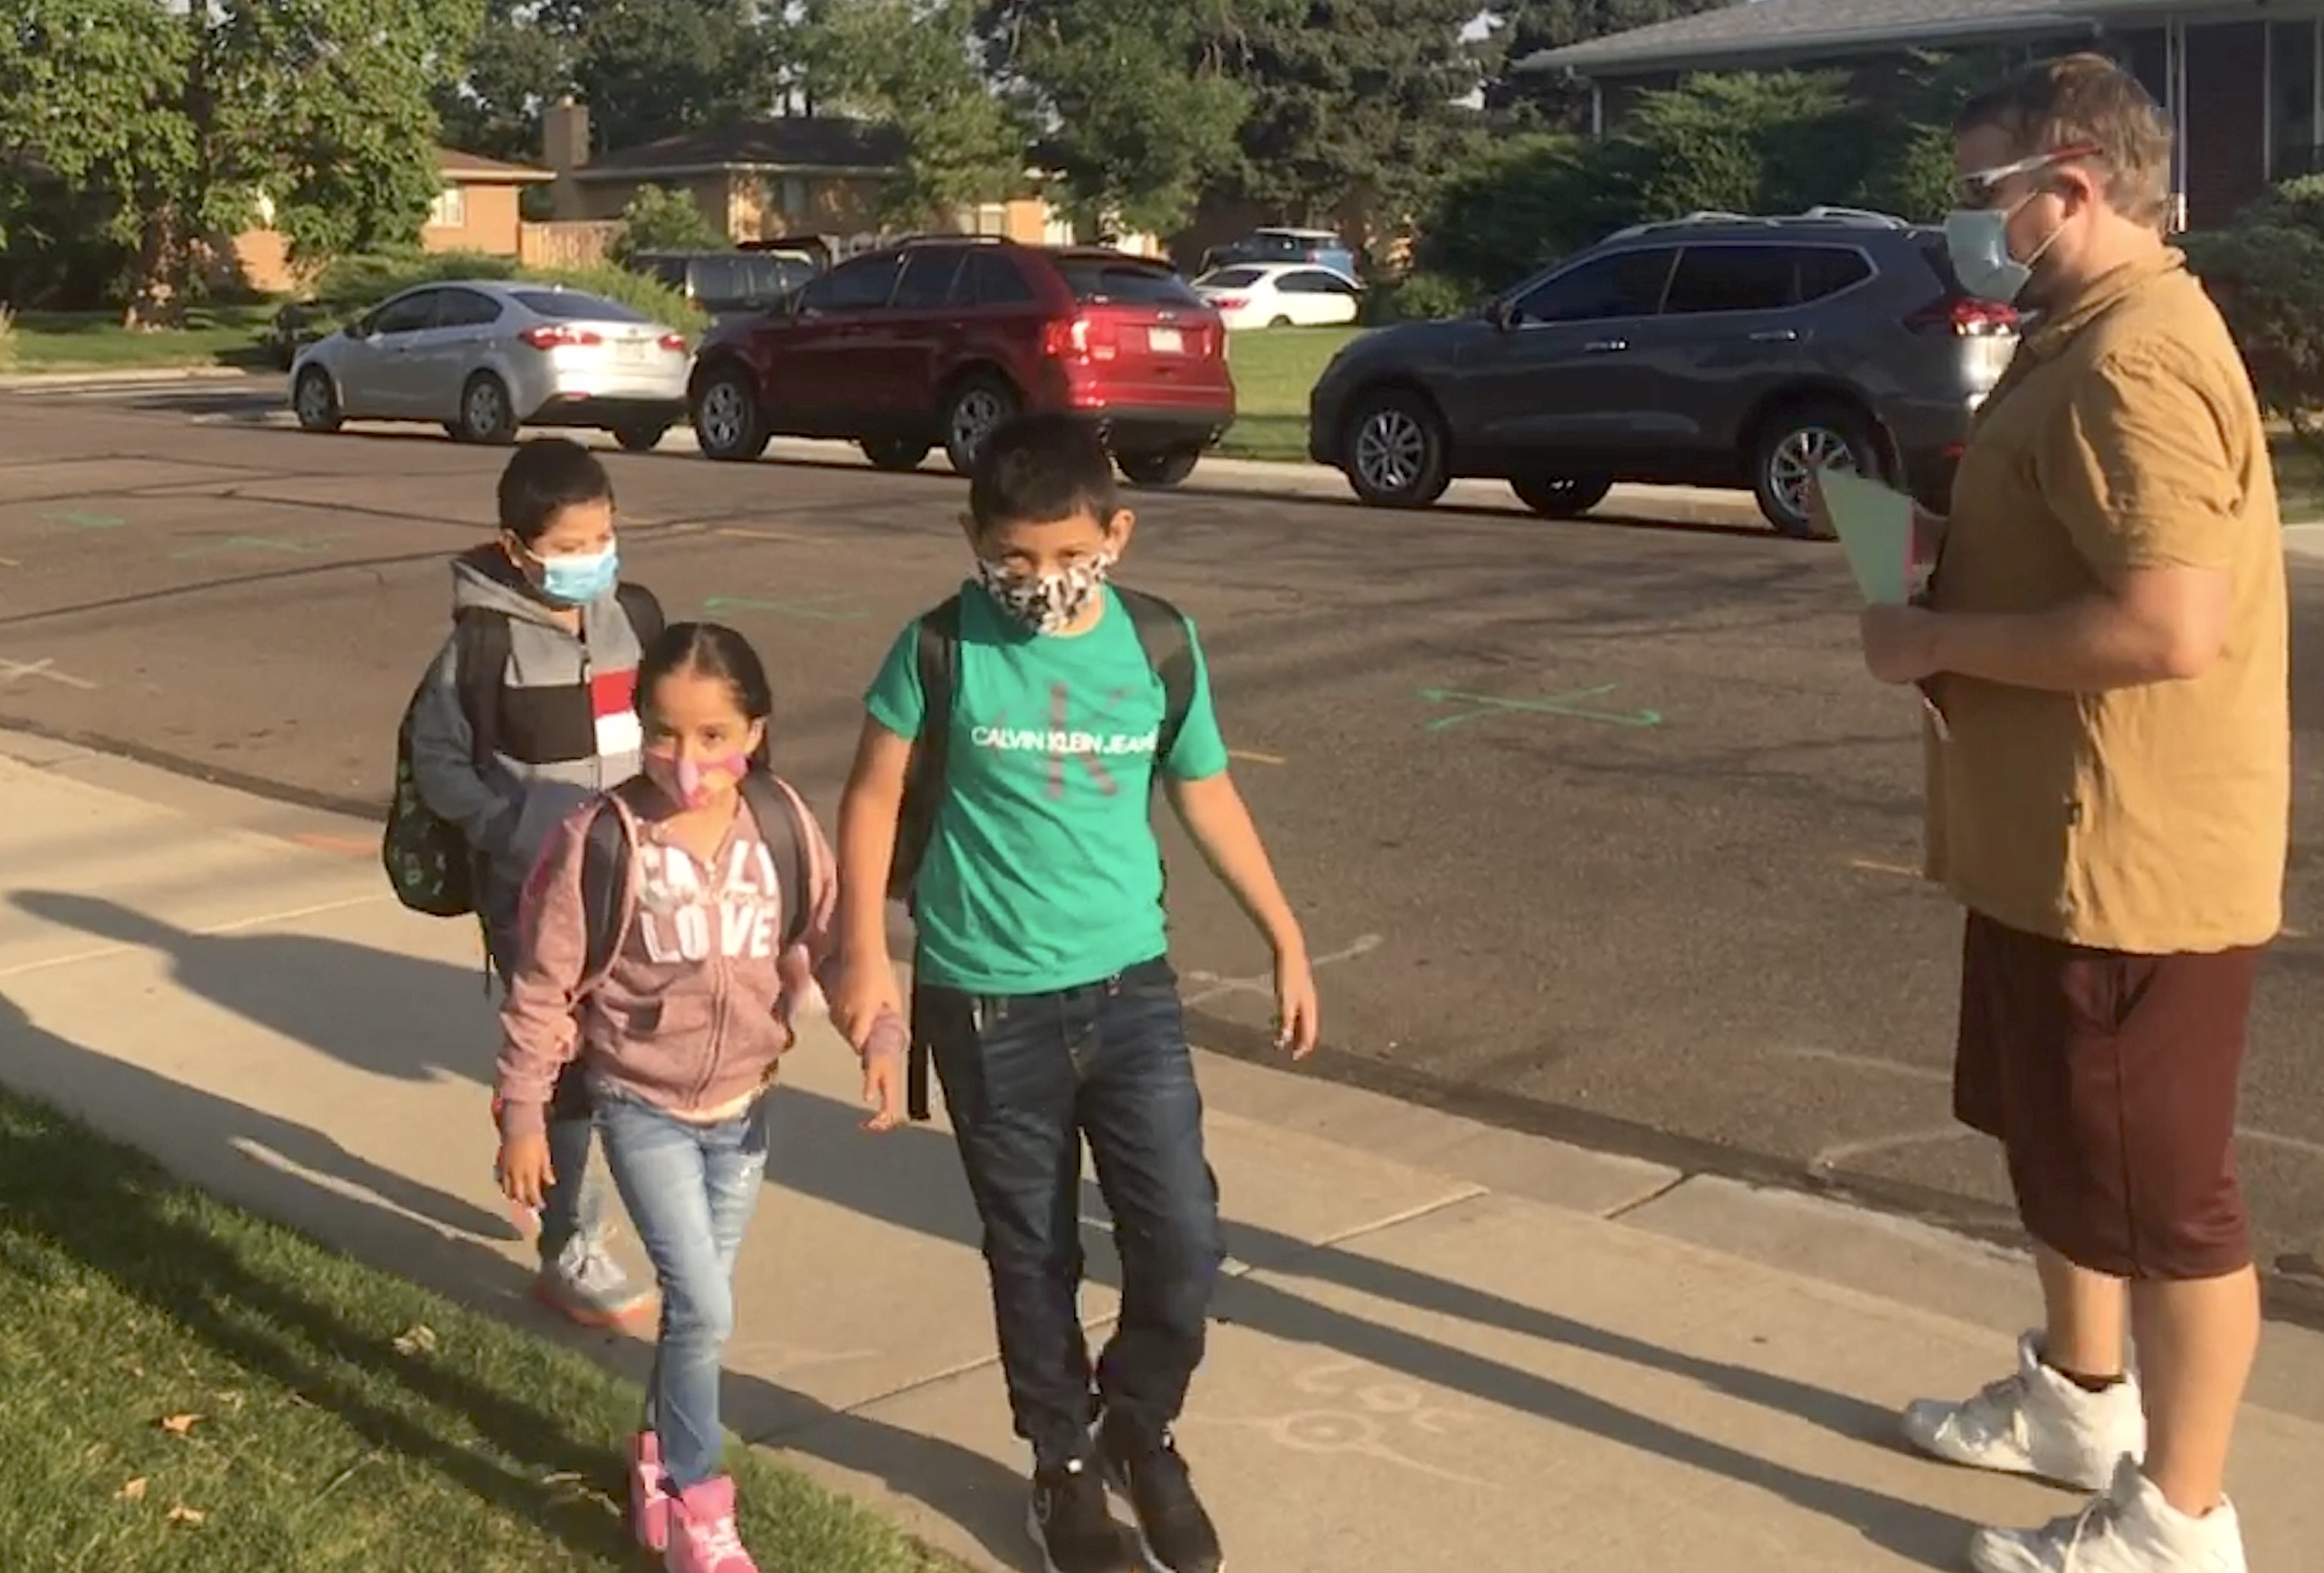 Students arrive at Skyline Vista Elementary in the Westminster district on the first day of school on August 20, 2020.